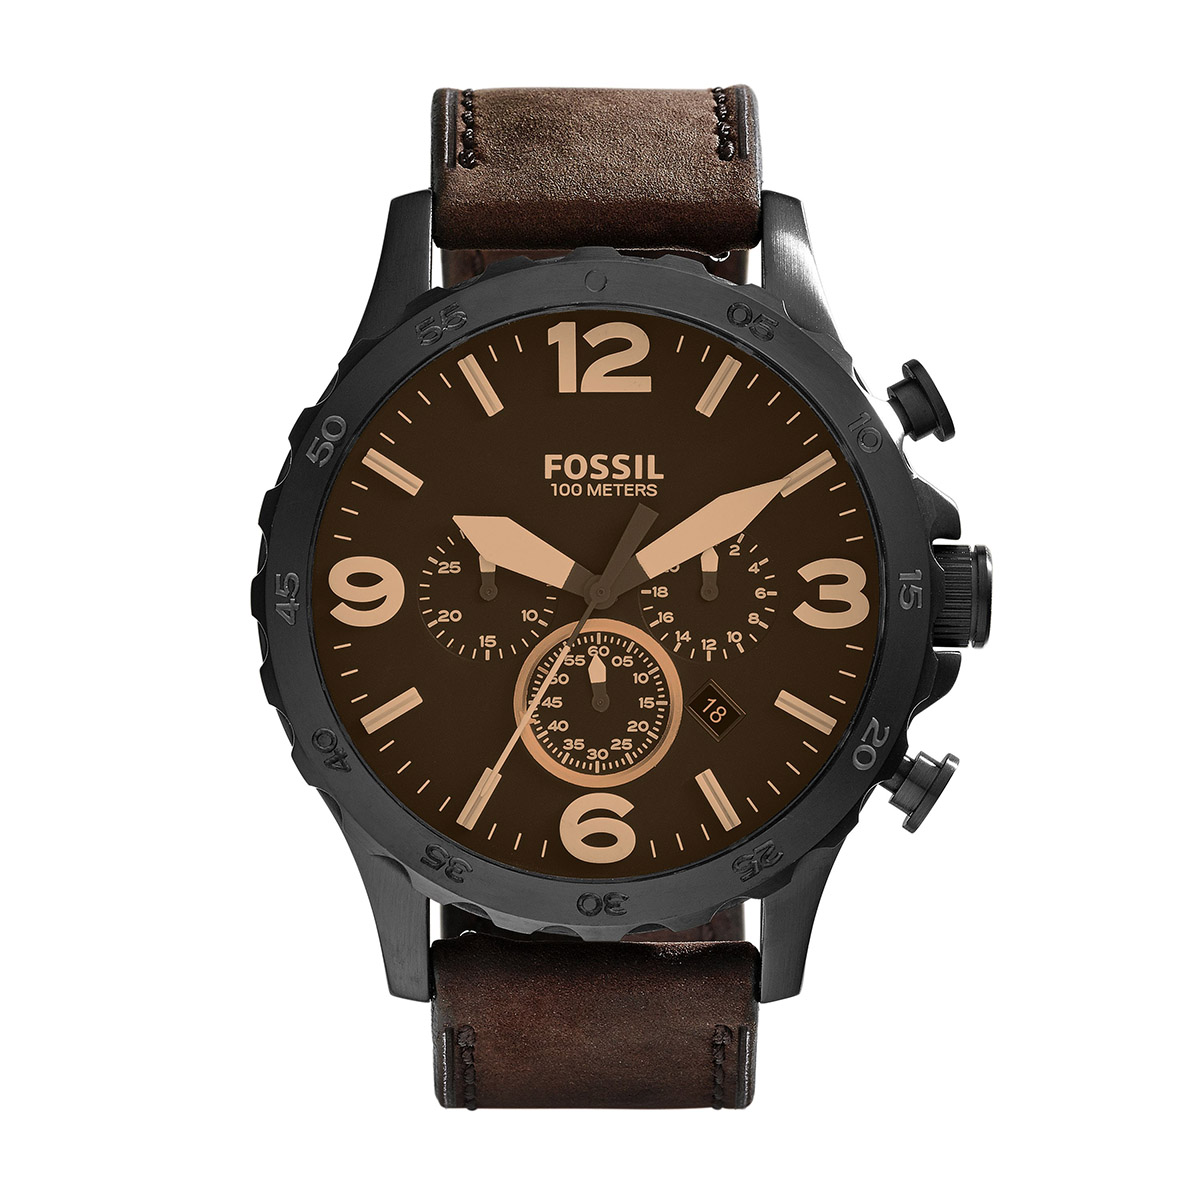 Laikrodis FOSSIL - Nate JR1487 Dark Brown/Black